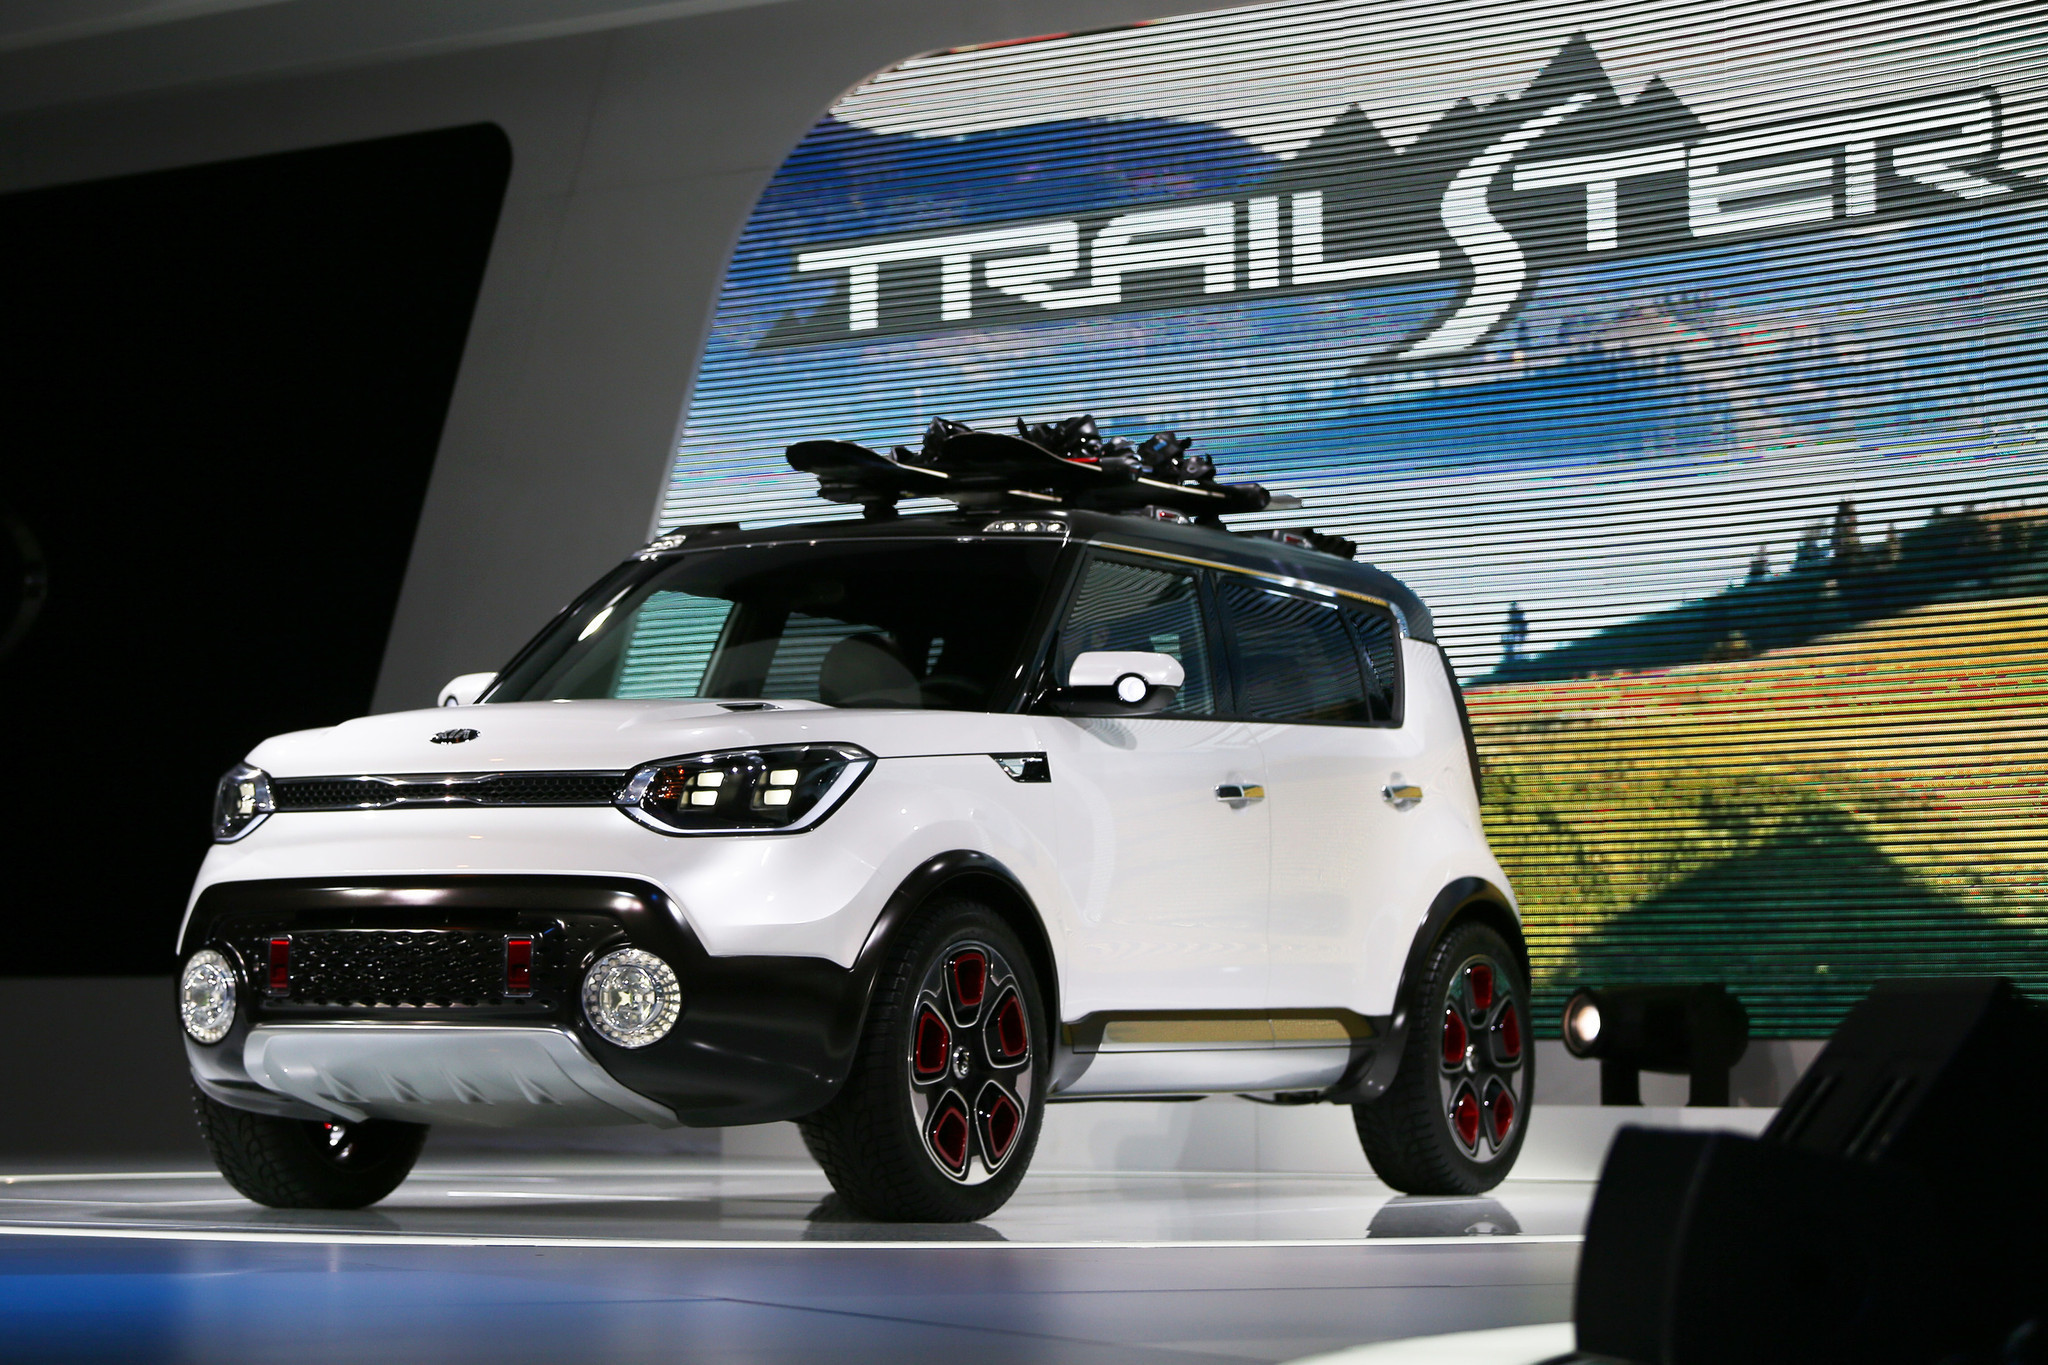 kia shows off awd soul trailster at chicago auto show chicago tribune. Black Bedroom Furniture Sets. Home Design Ideas